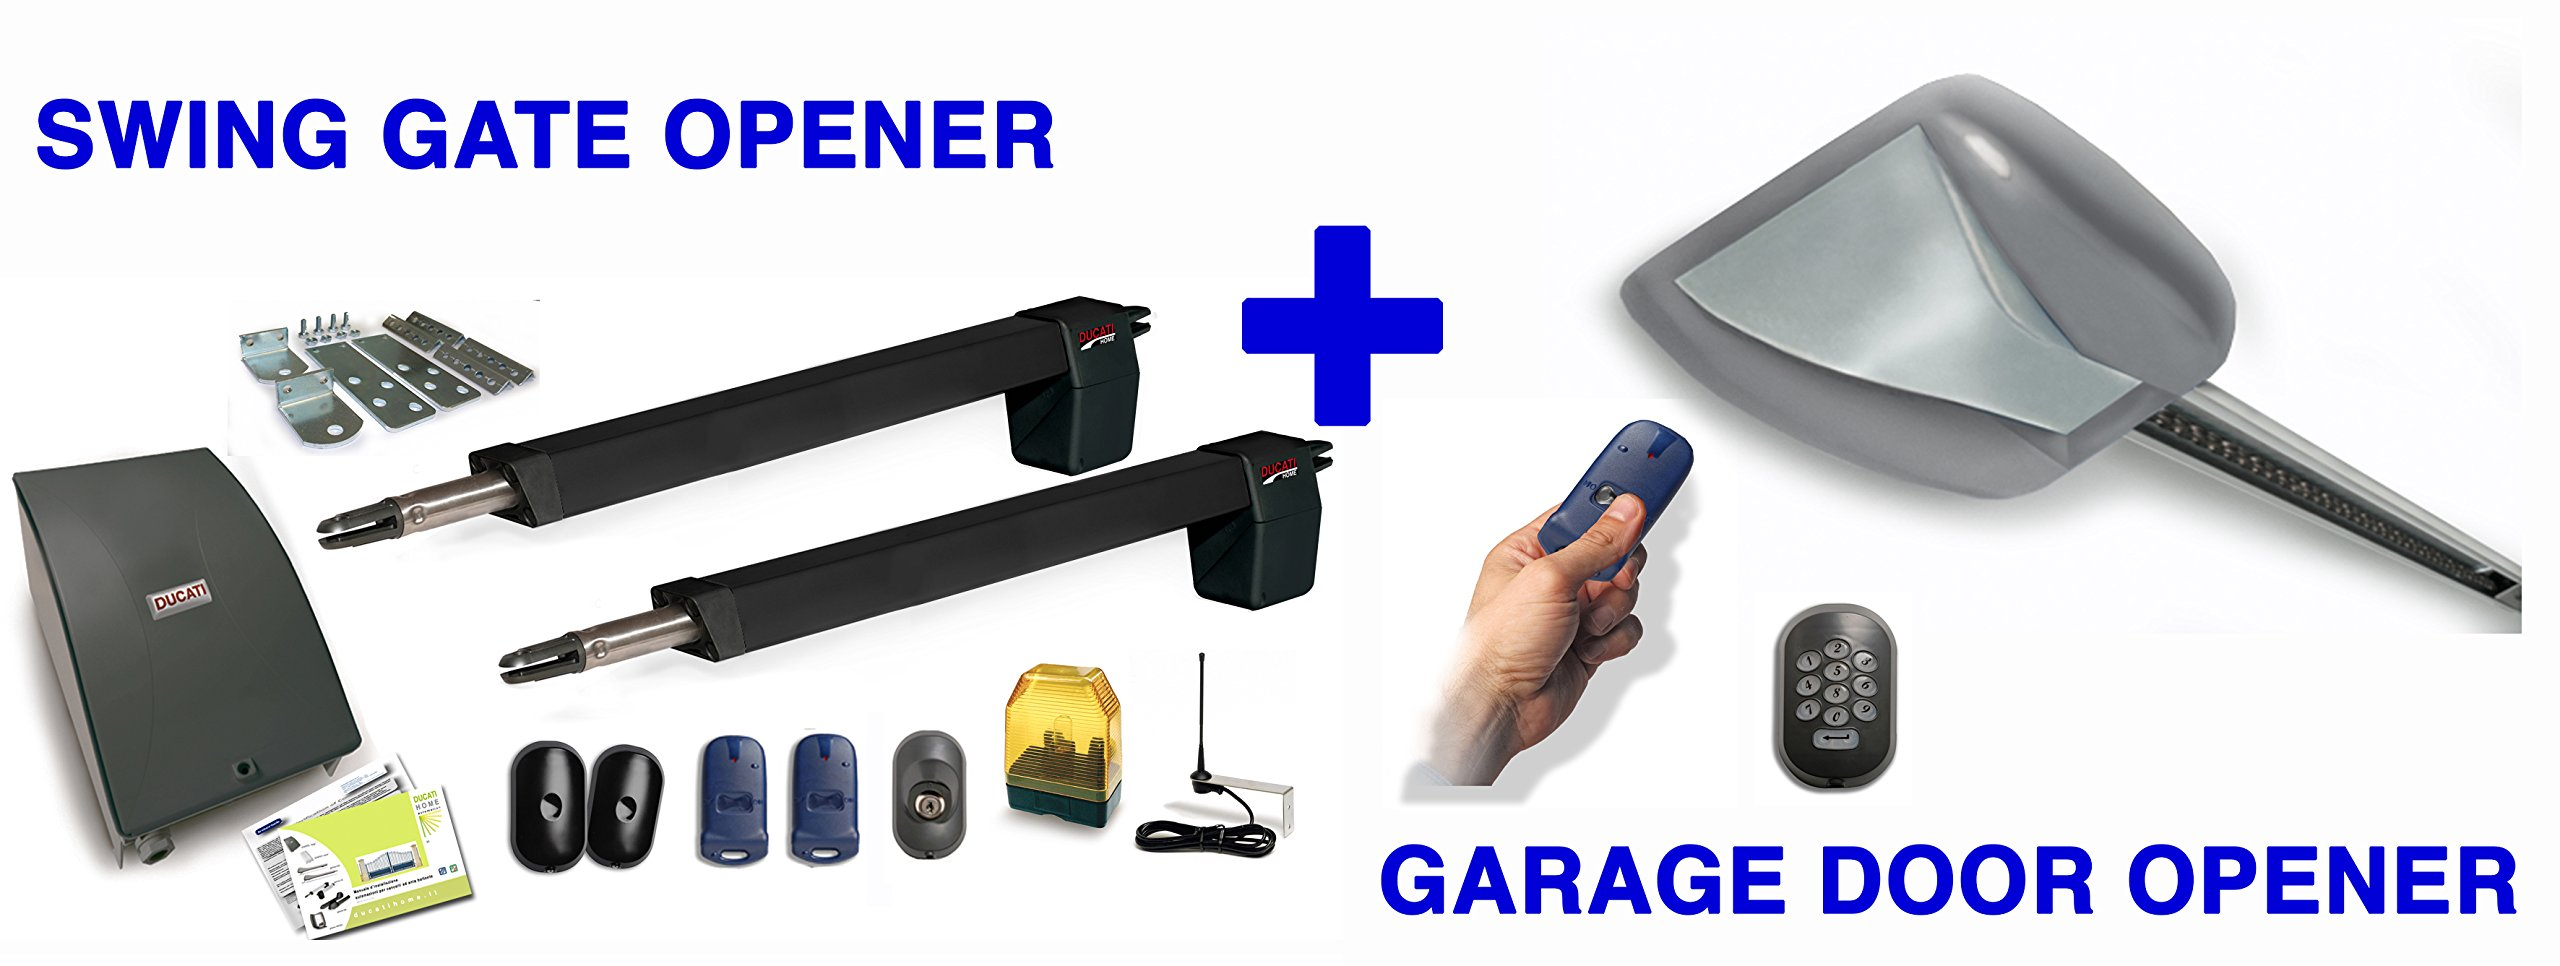 DUCATI DUO PACKAGE : HC812-400 SWING GATE OPENER + 8900BELT GARAGE DOOR OPENER by DUCATI HOME AUTOMATION